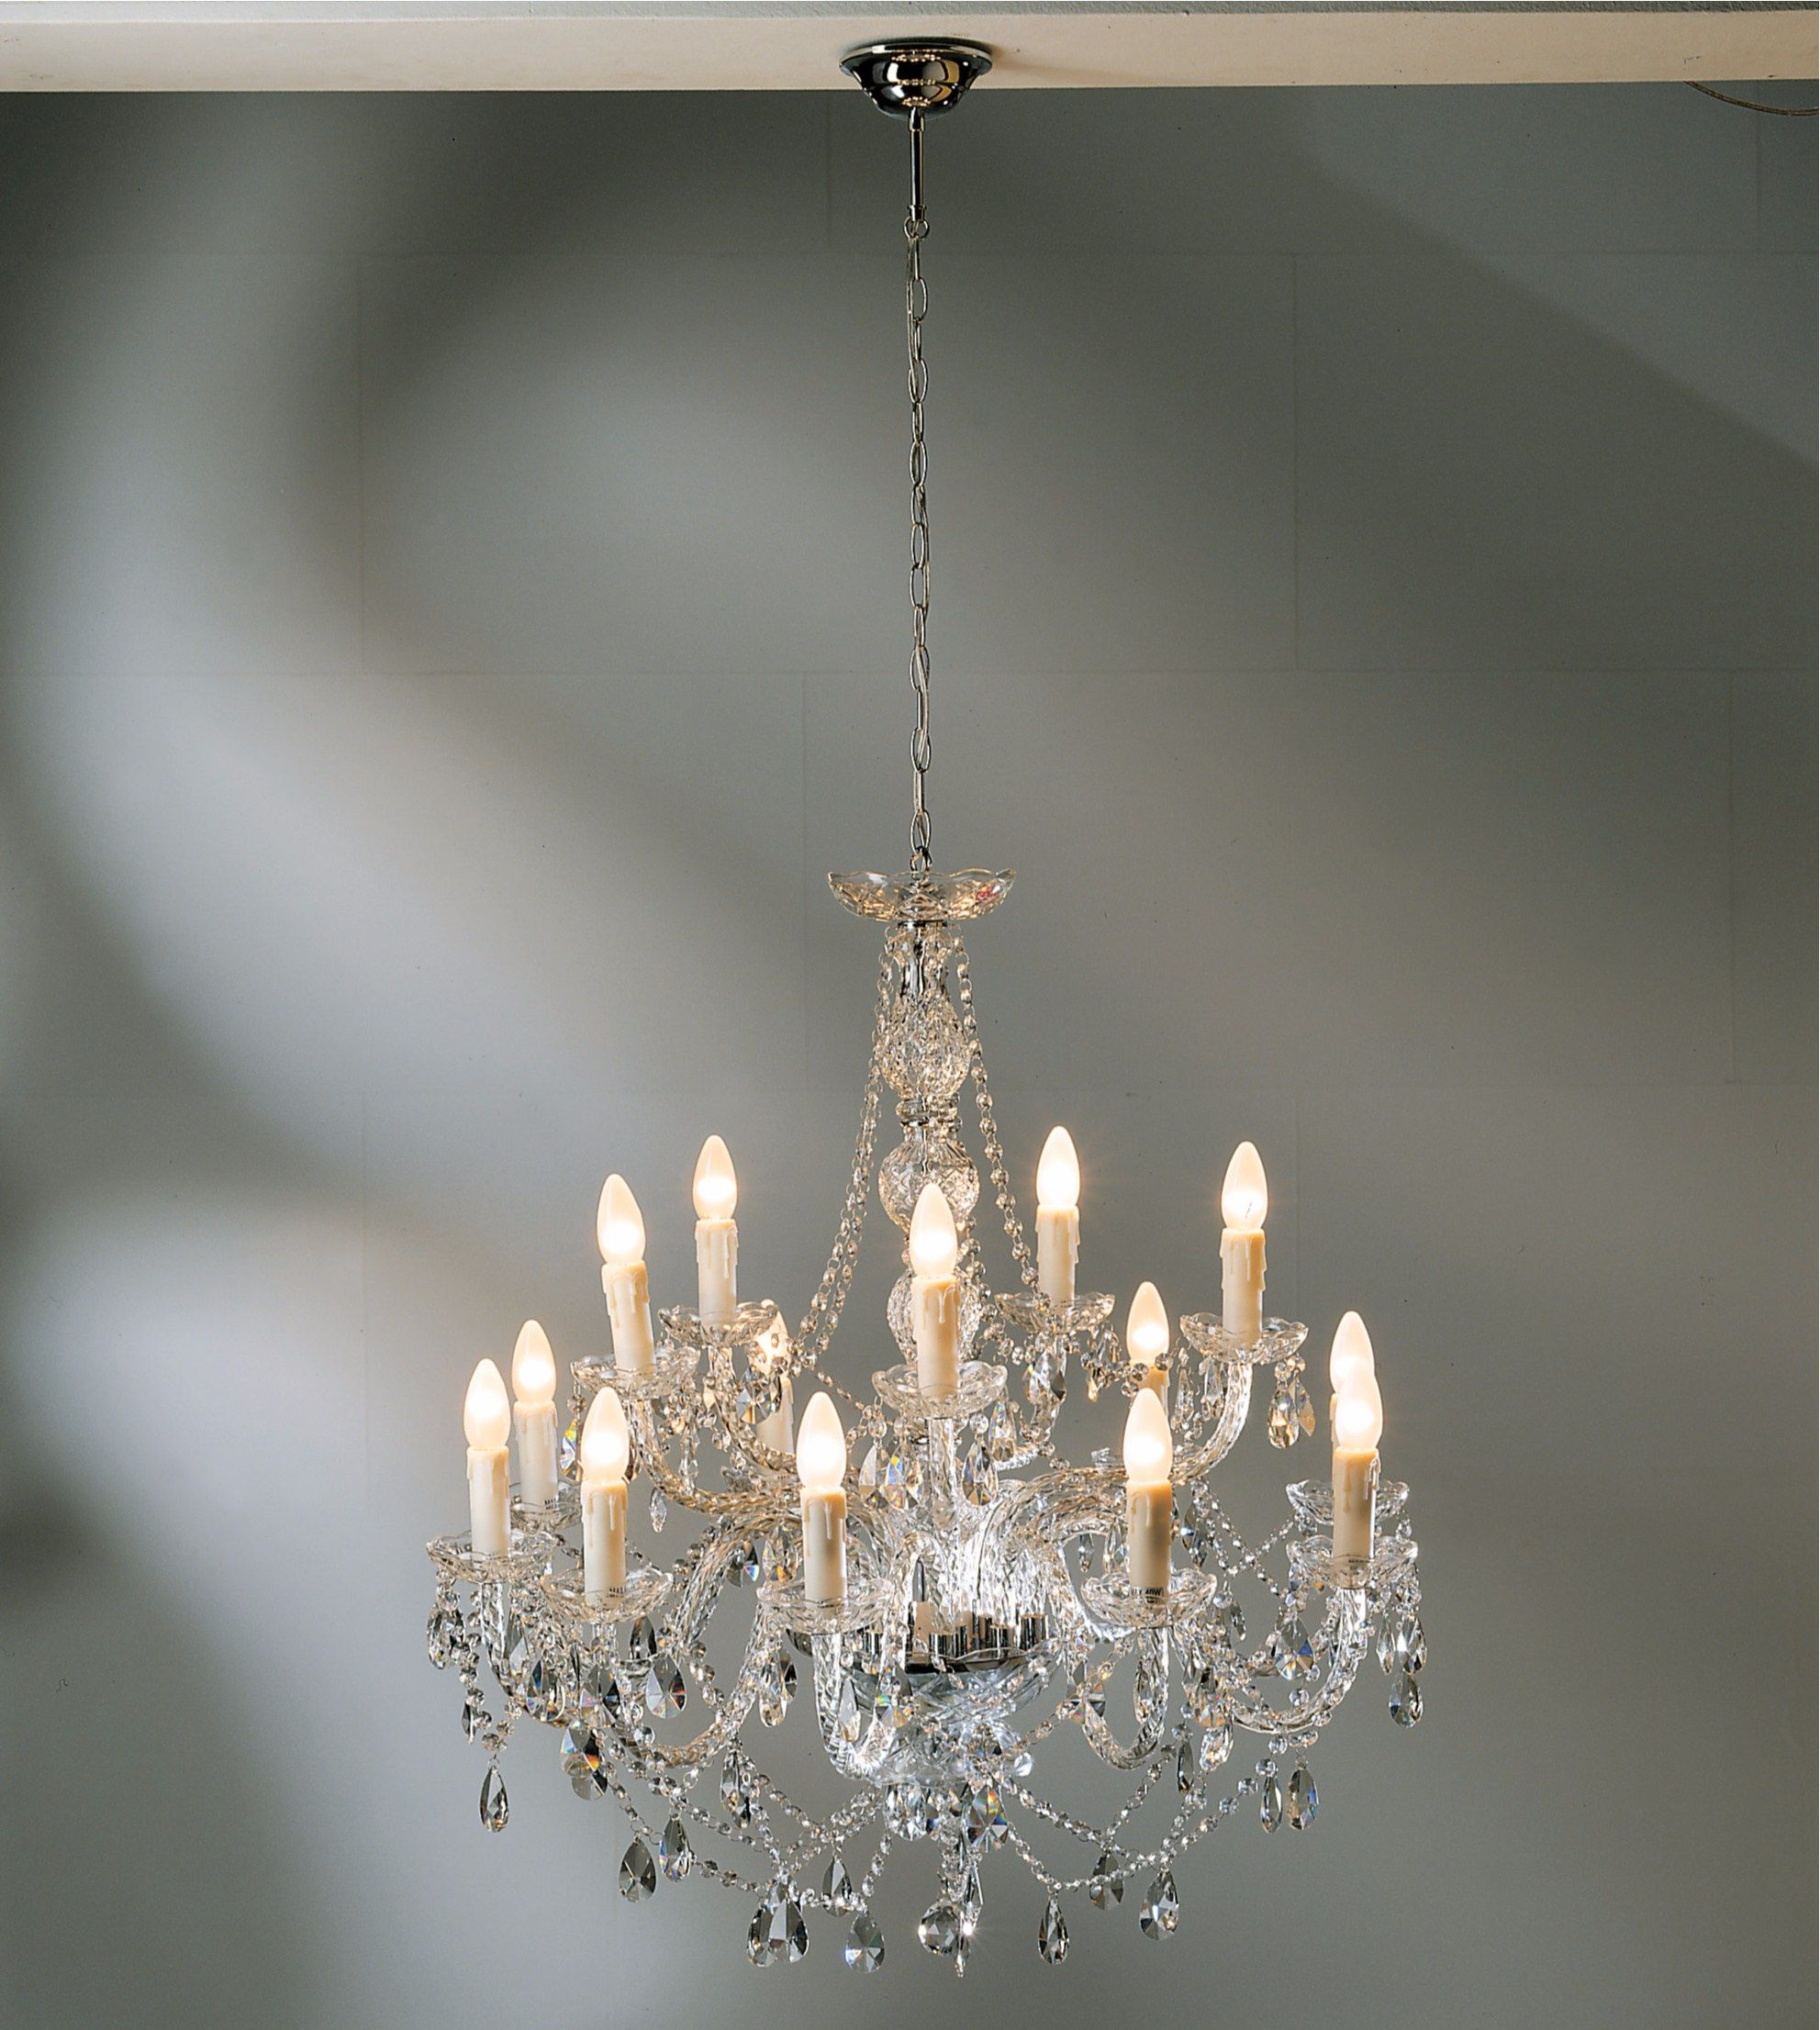 Glass Chandelier Gioiello Crystal Clear 14 By Kare Design Glass